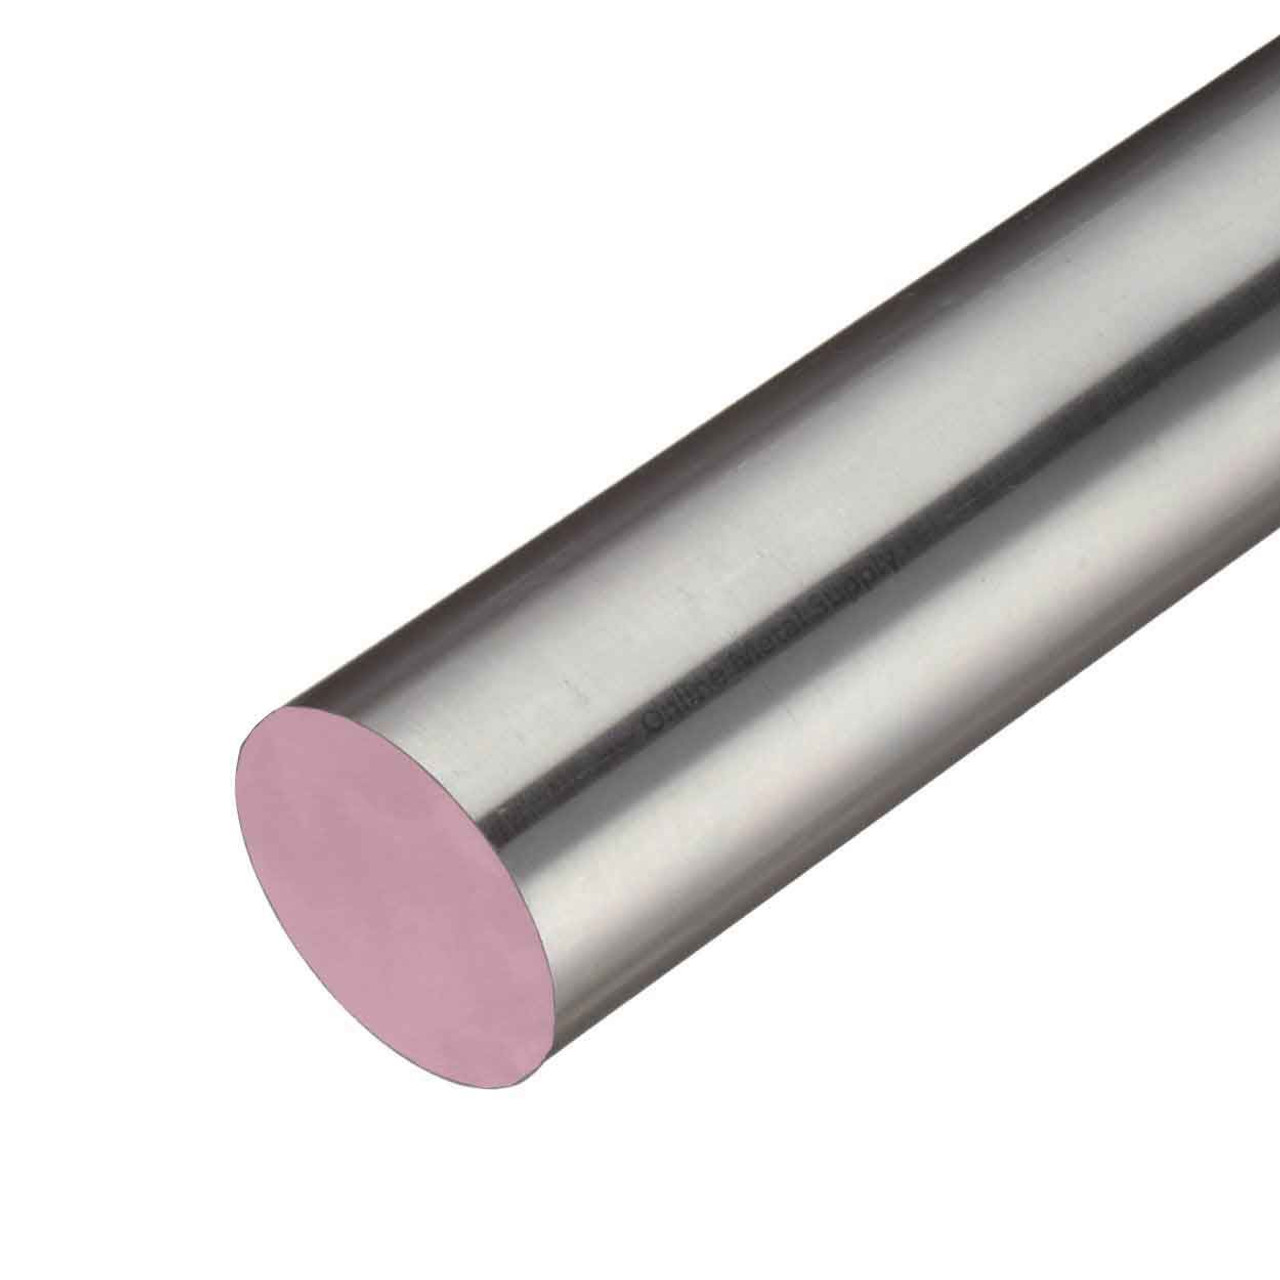 2.750 (2-3/4 inch) x 8 inches, 303 CF Stainless Steel Round Rod